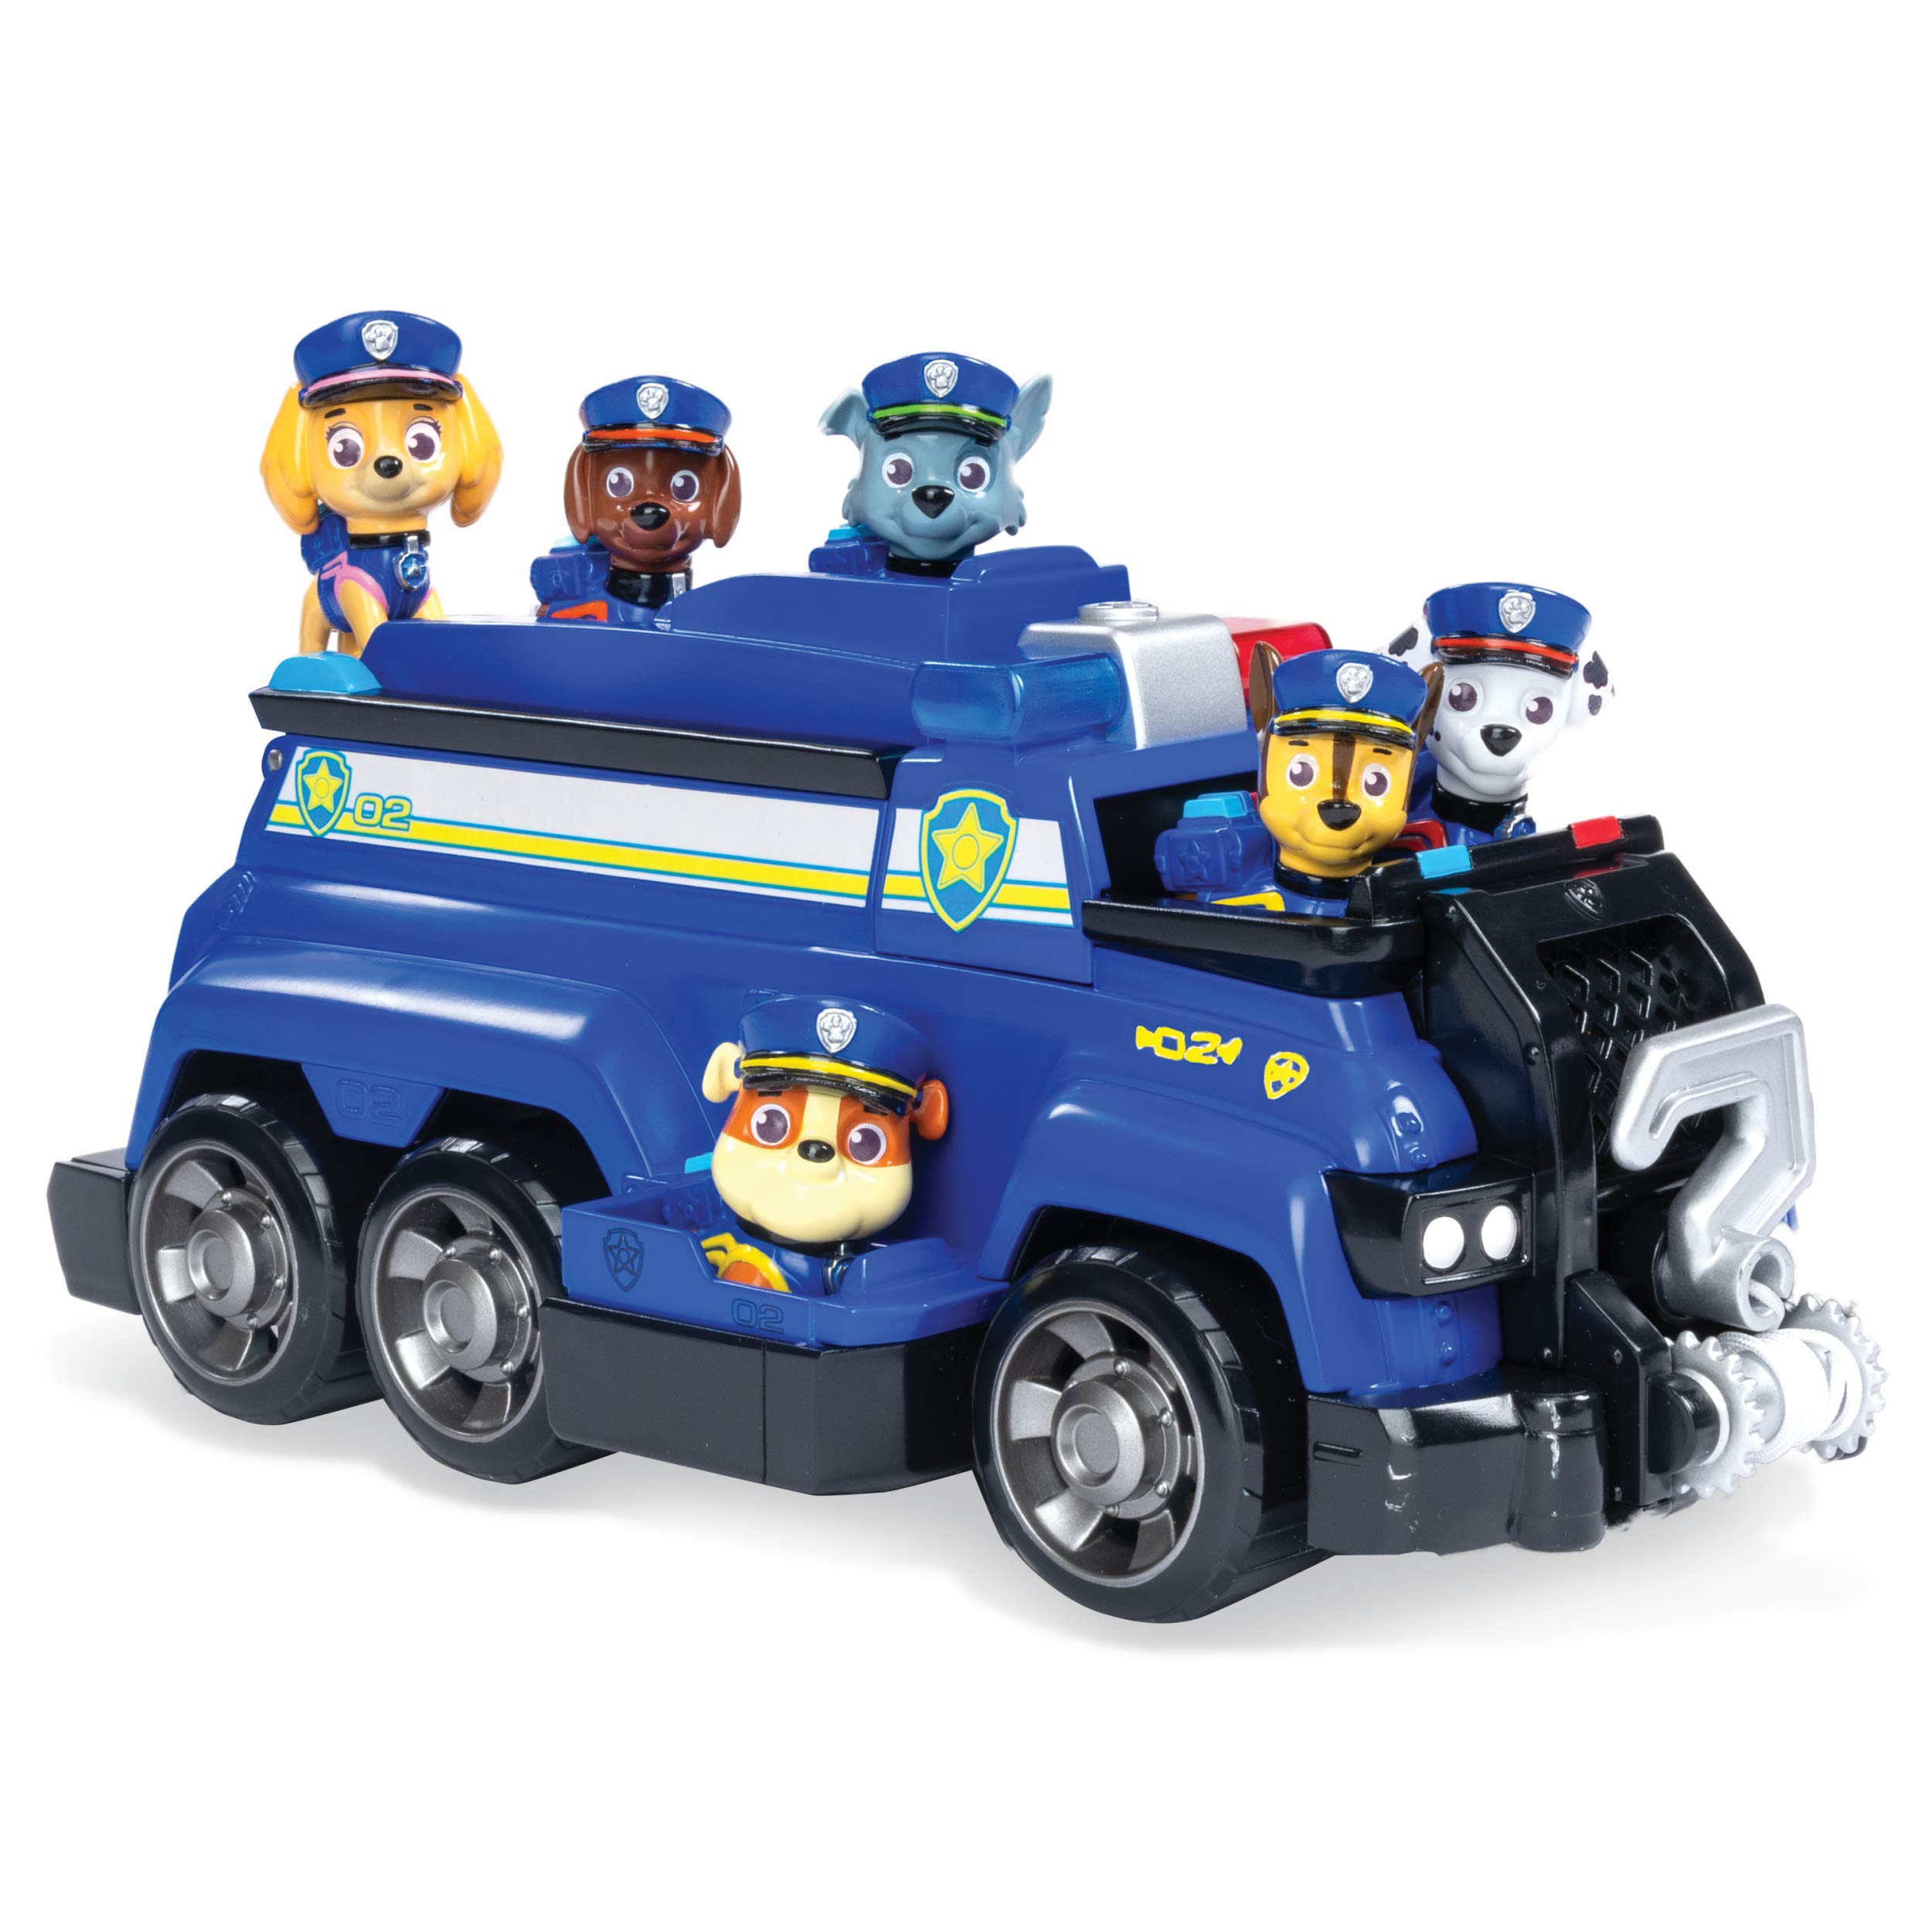 Paw Patrol, Chase's Total Team Rescue Police Cruiser Vehicle with 6 Pups, For Kids Aged 3 & Up by Paw Patrol